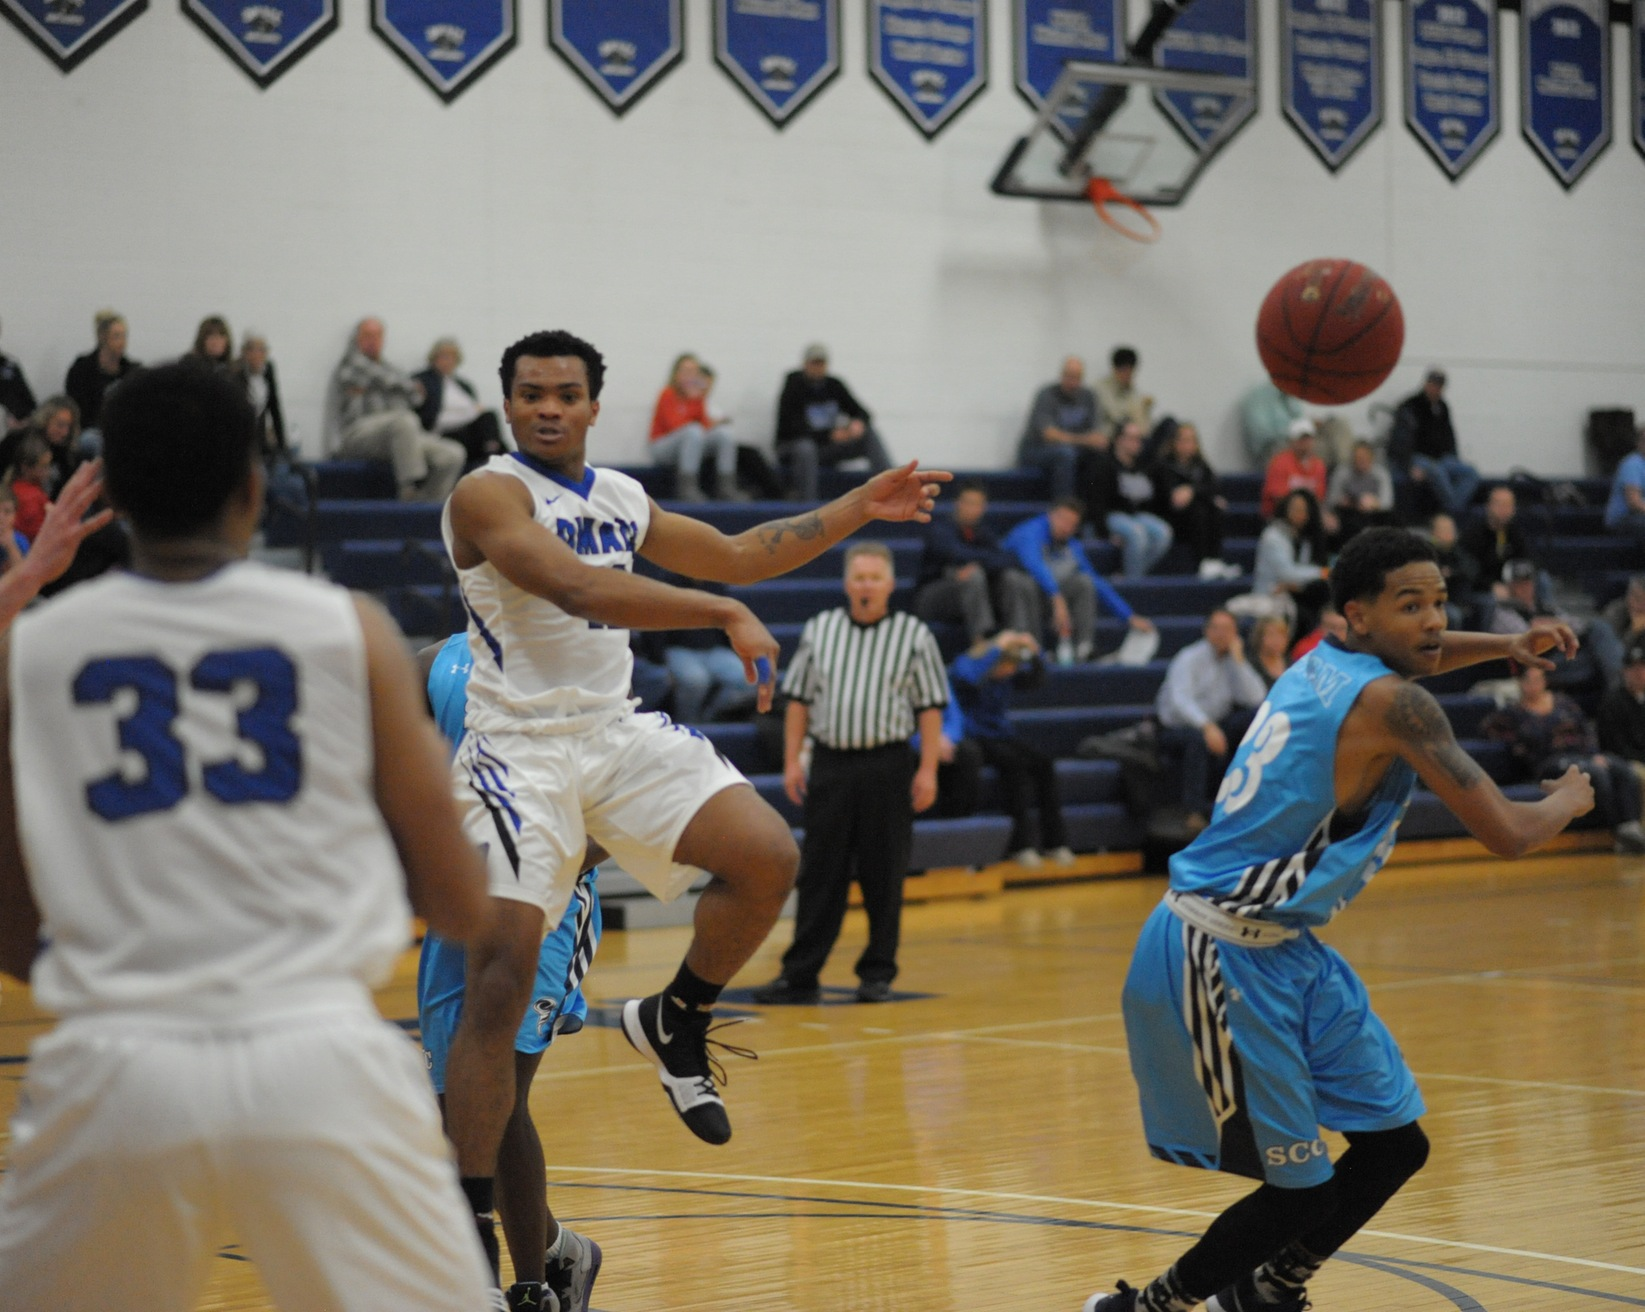 DMACC Men's Basketball Improves to 7-1 With Two Wins in Home Classic